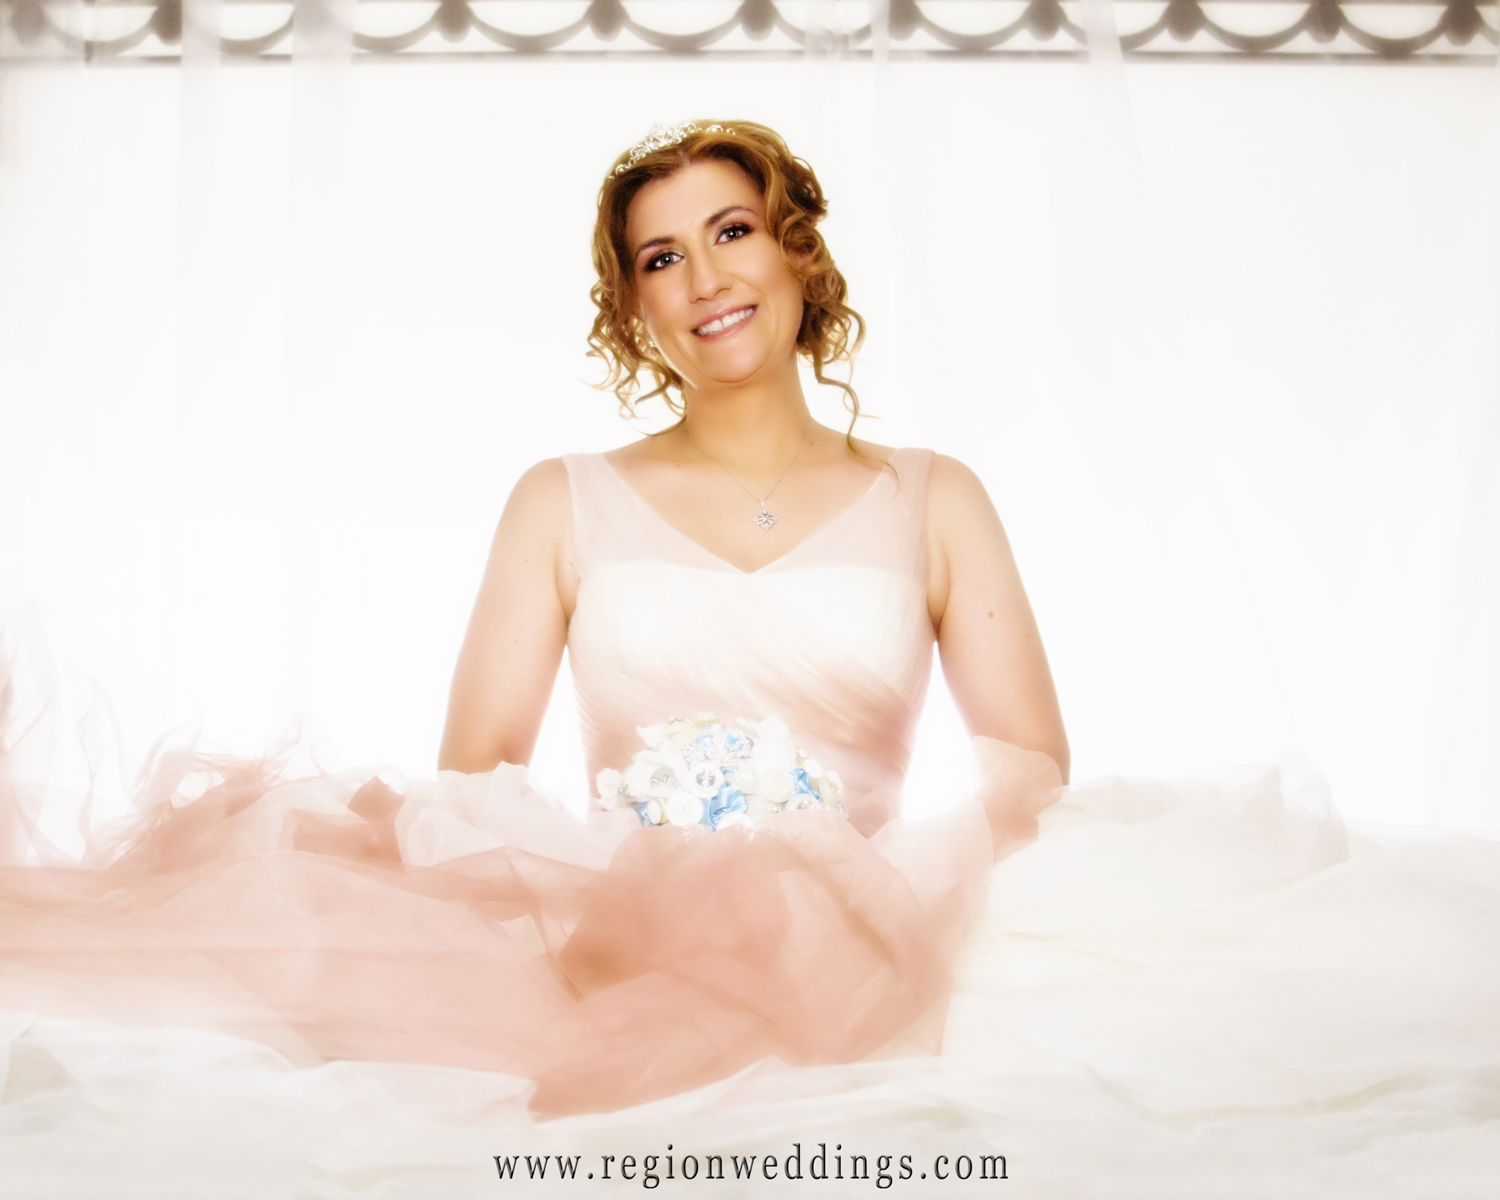 Bride poses on the top of her bed for an artistic wedding photo at her home in Schererville, Indiana.